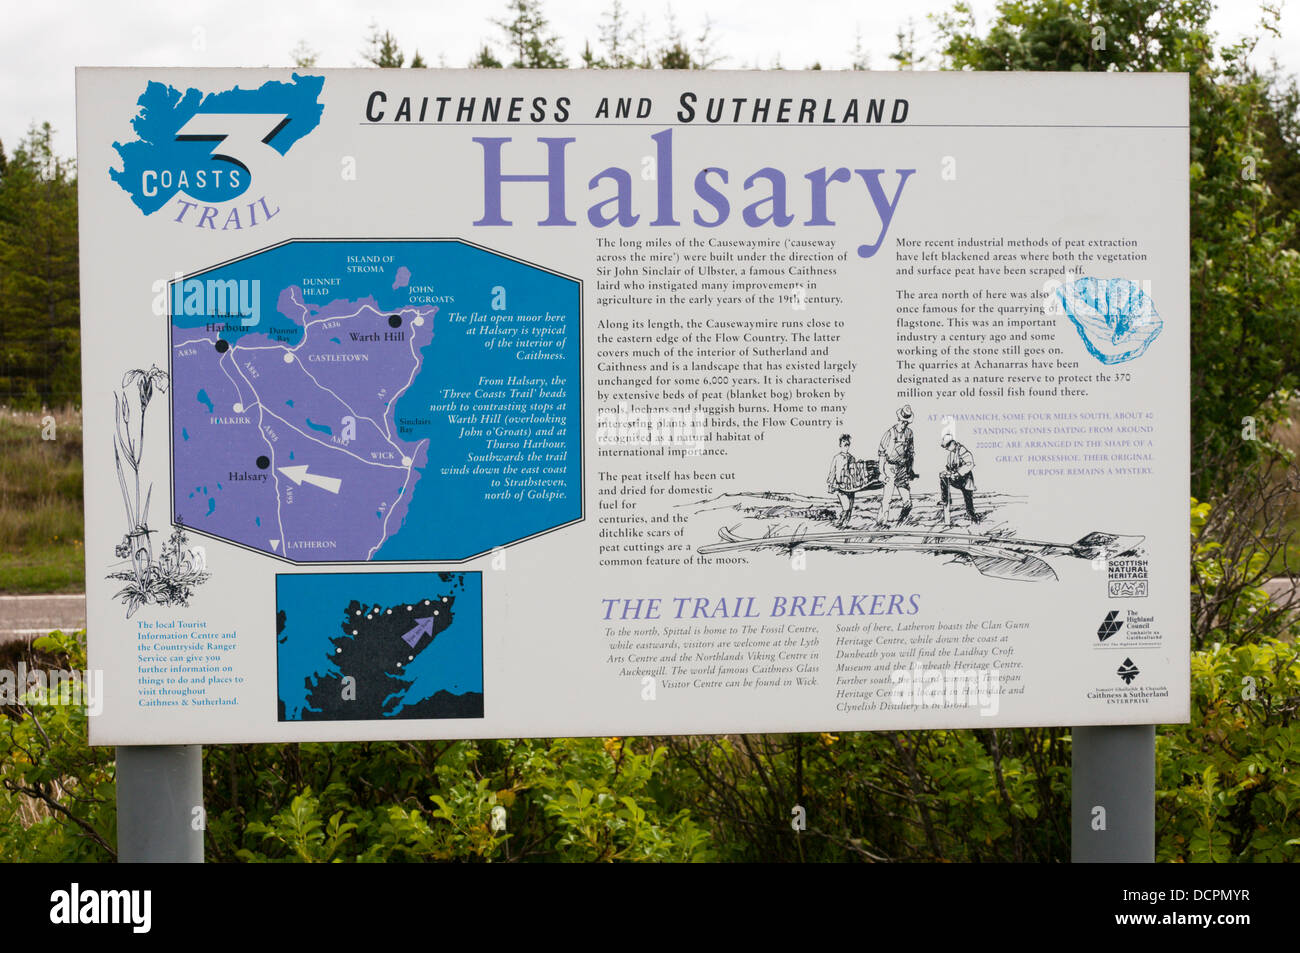 A sign at Halsary in Caithness on the Three 3 Coasts Trail - Stock Image